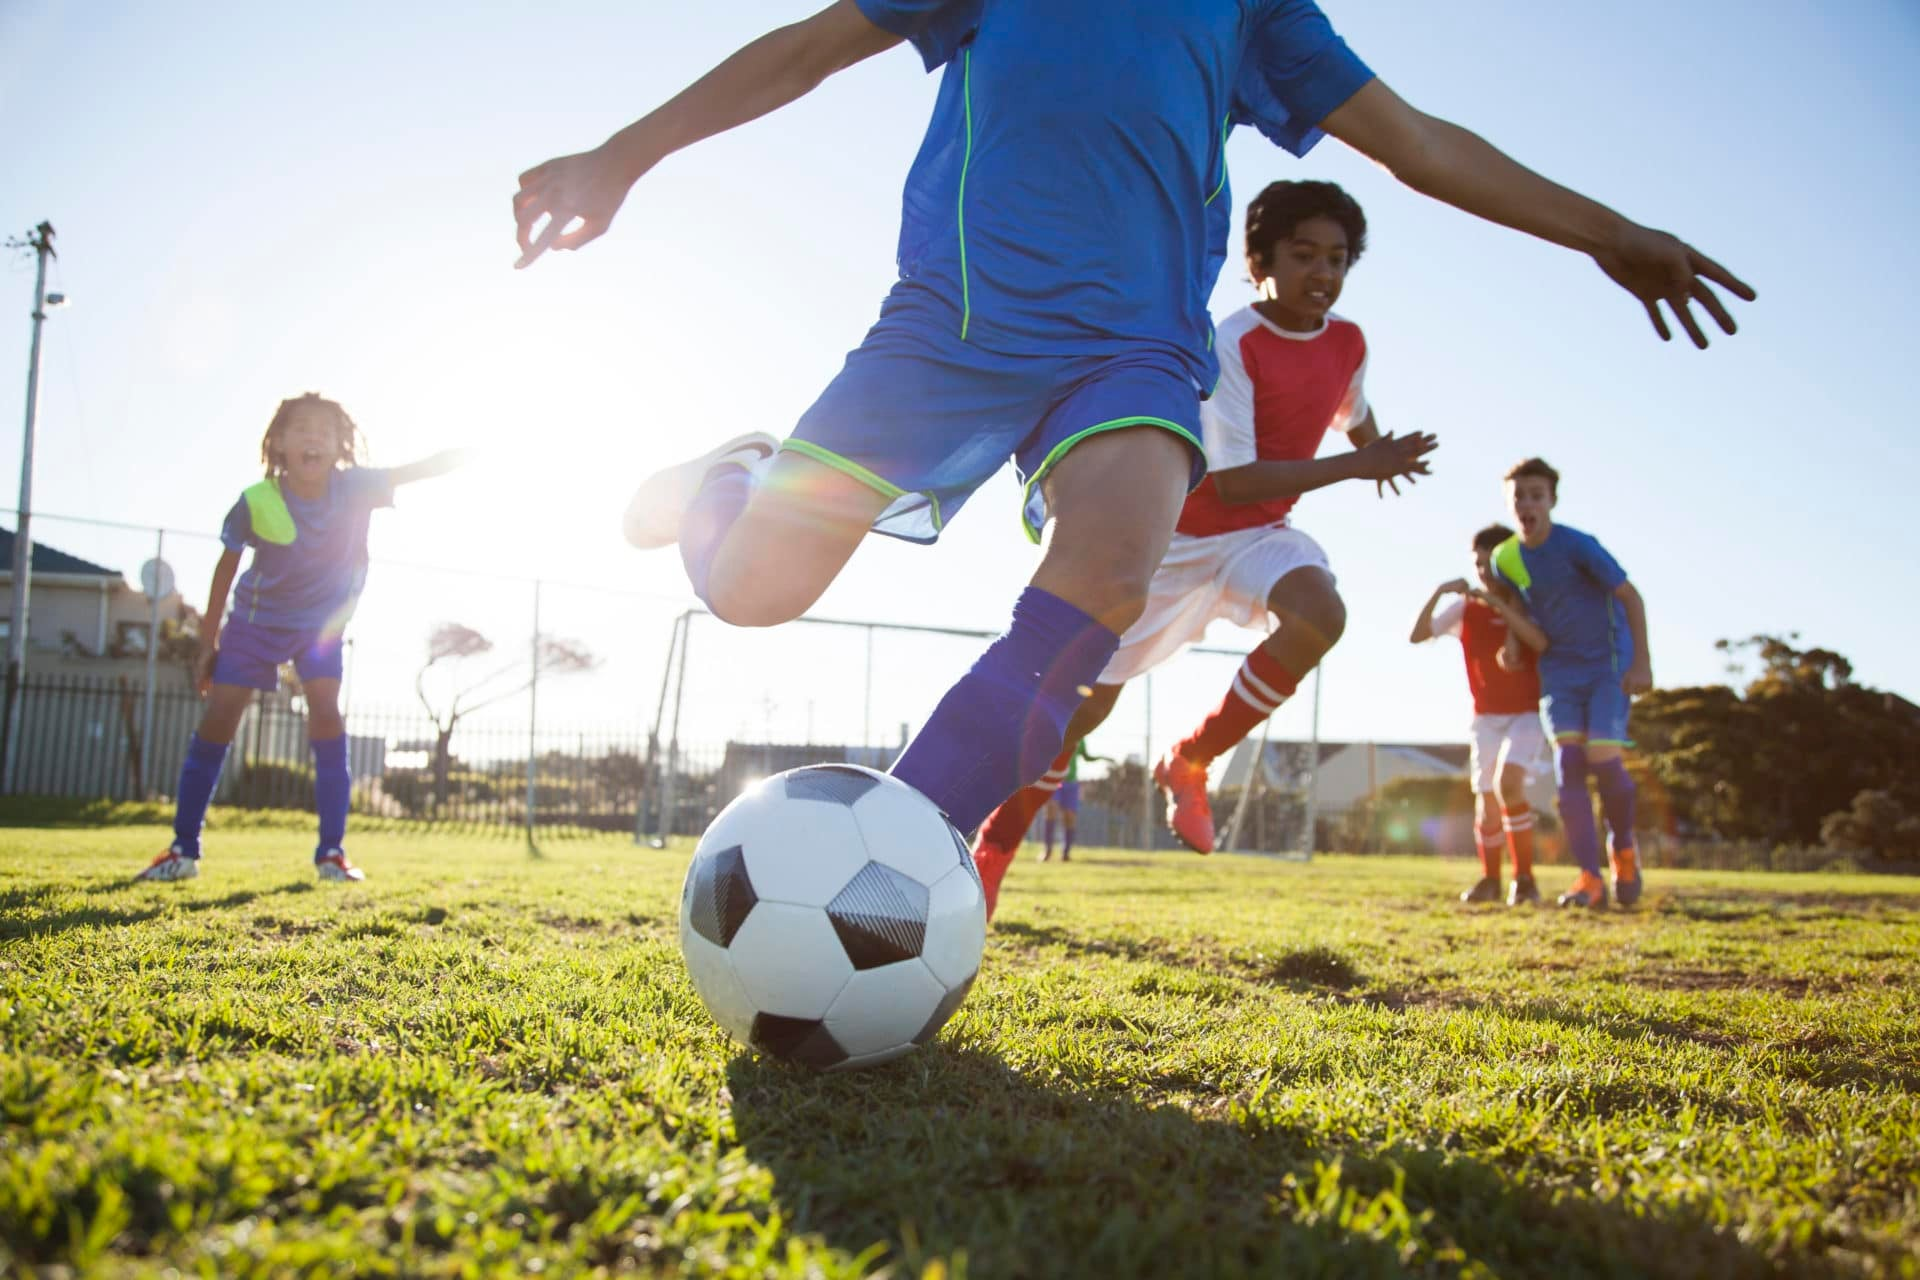 Black People Can't Even Watch Their Children Play Soccer In Peace Now - Essence